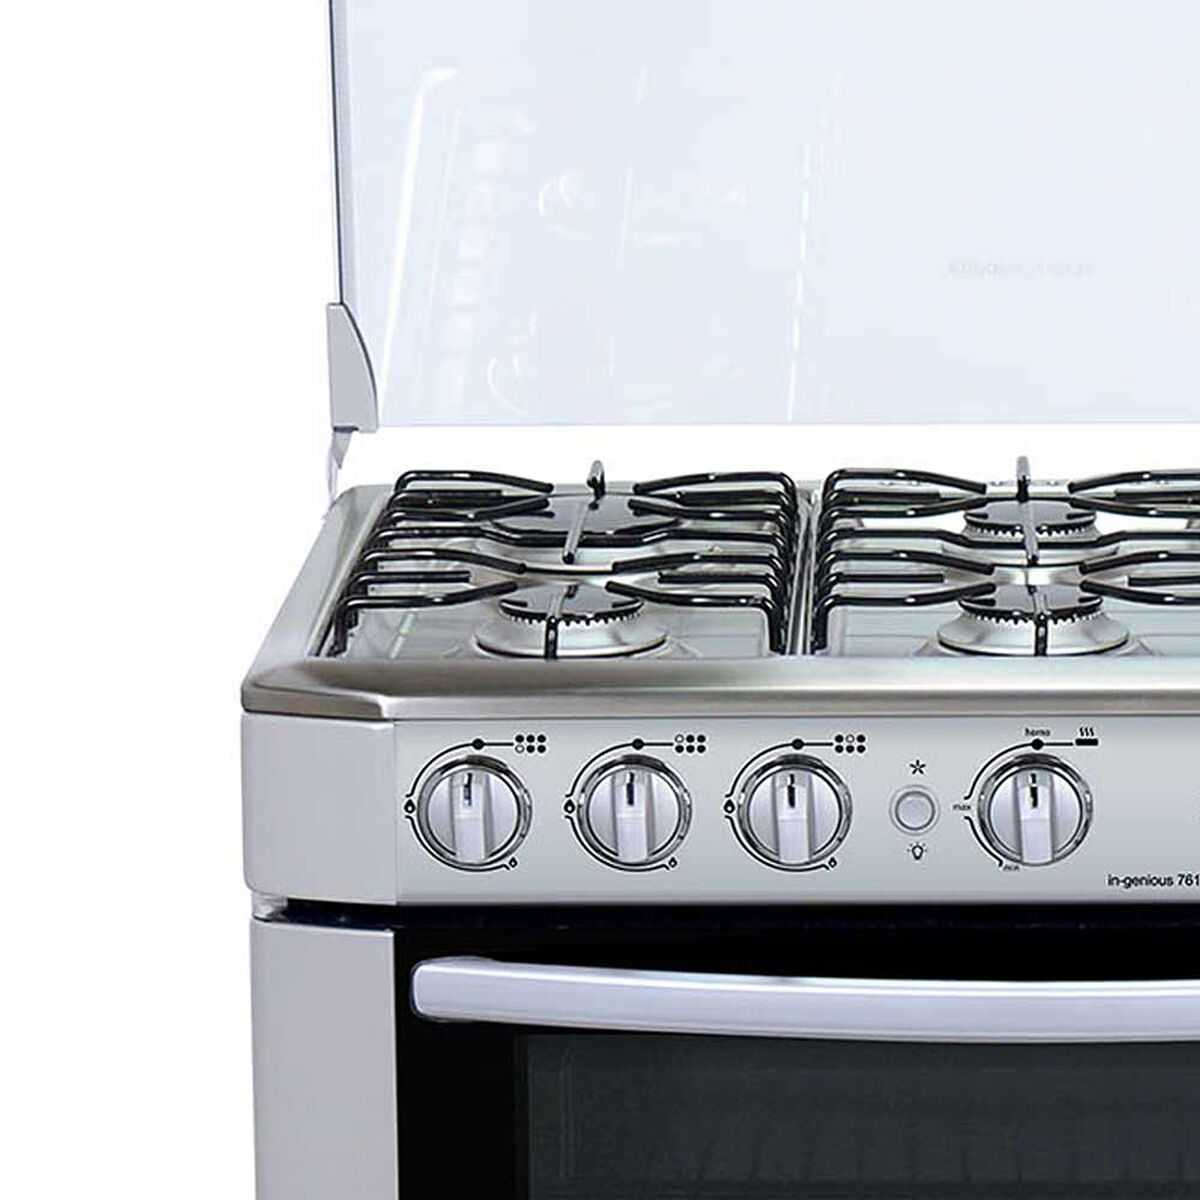 Cocina a gas Mabe Andes 76HG0 109 lt